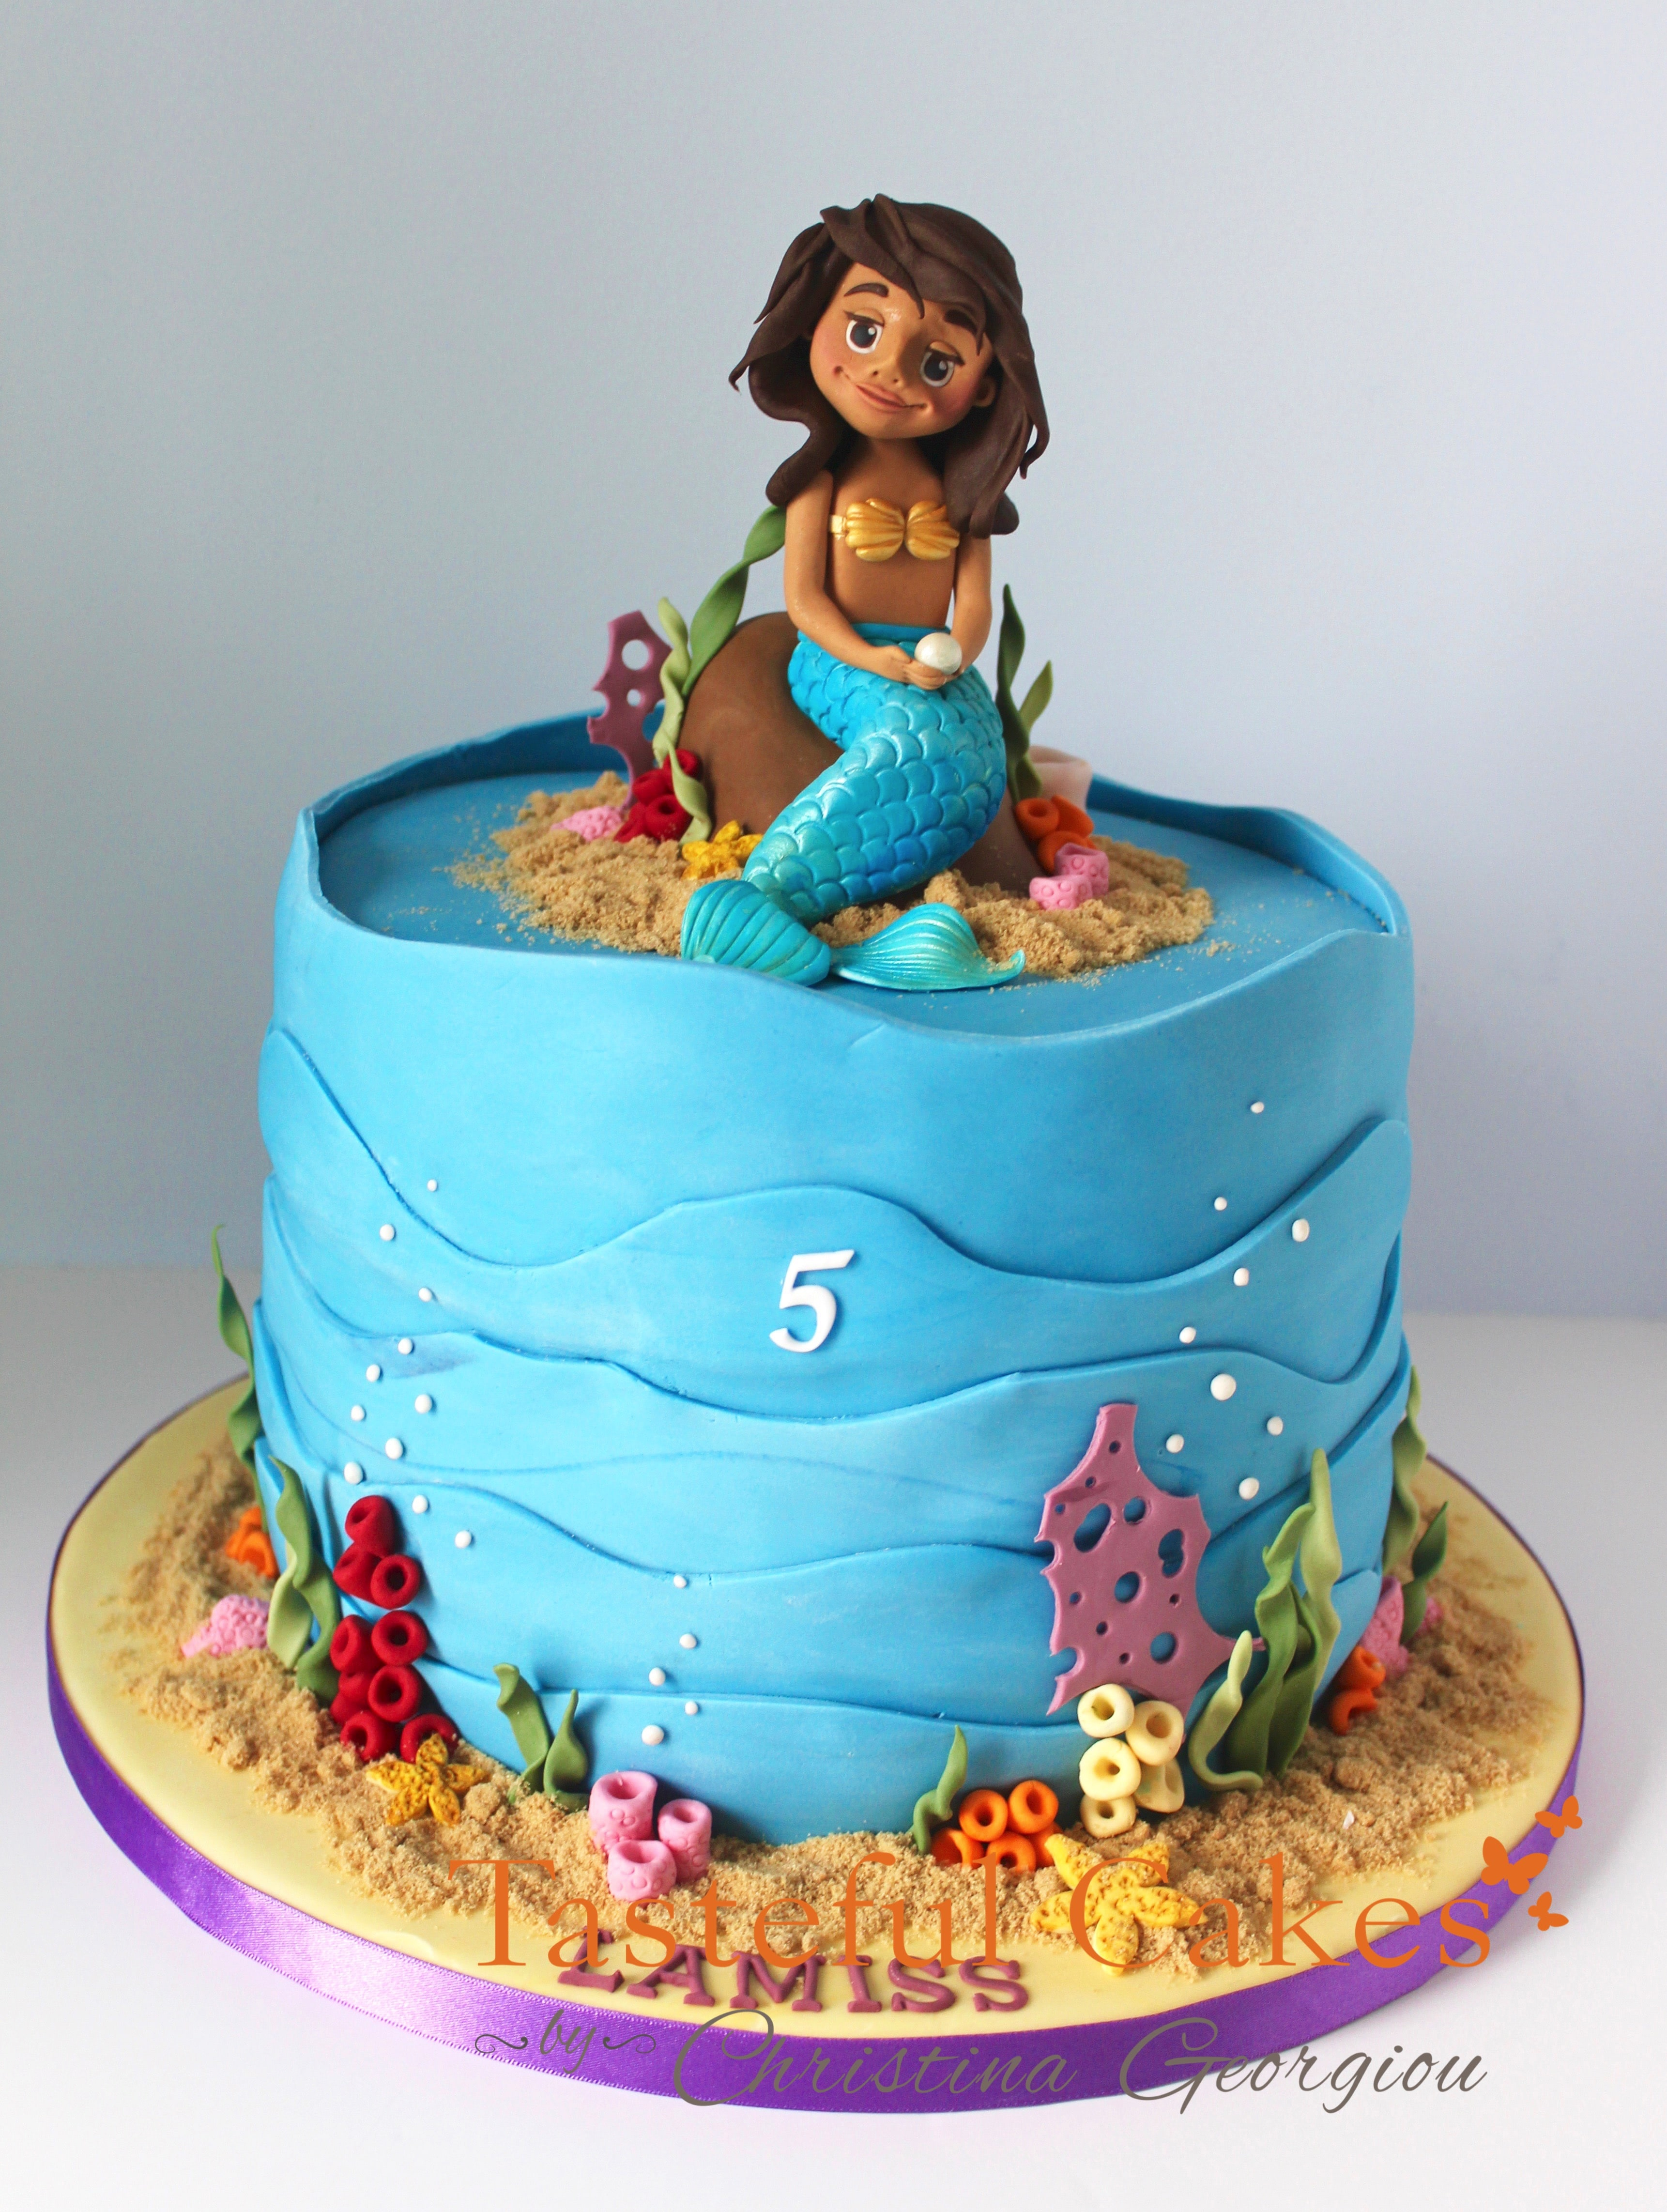 Tasteful Cakes By Christina Georgiou A Mermaid Birthday Cake